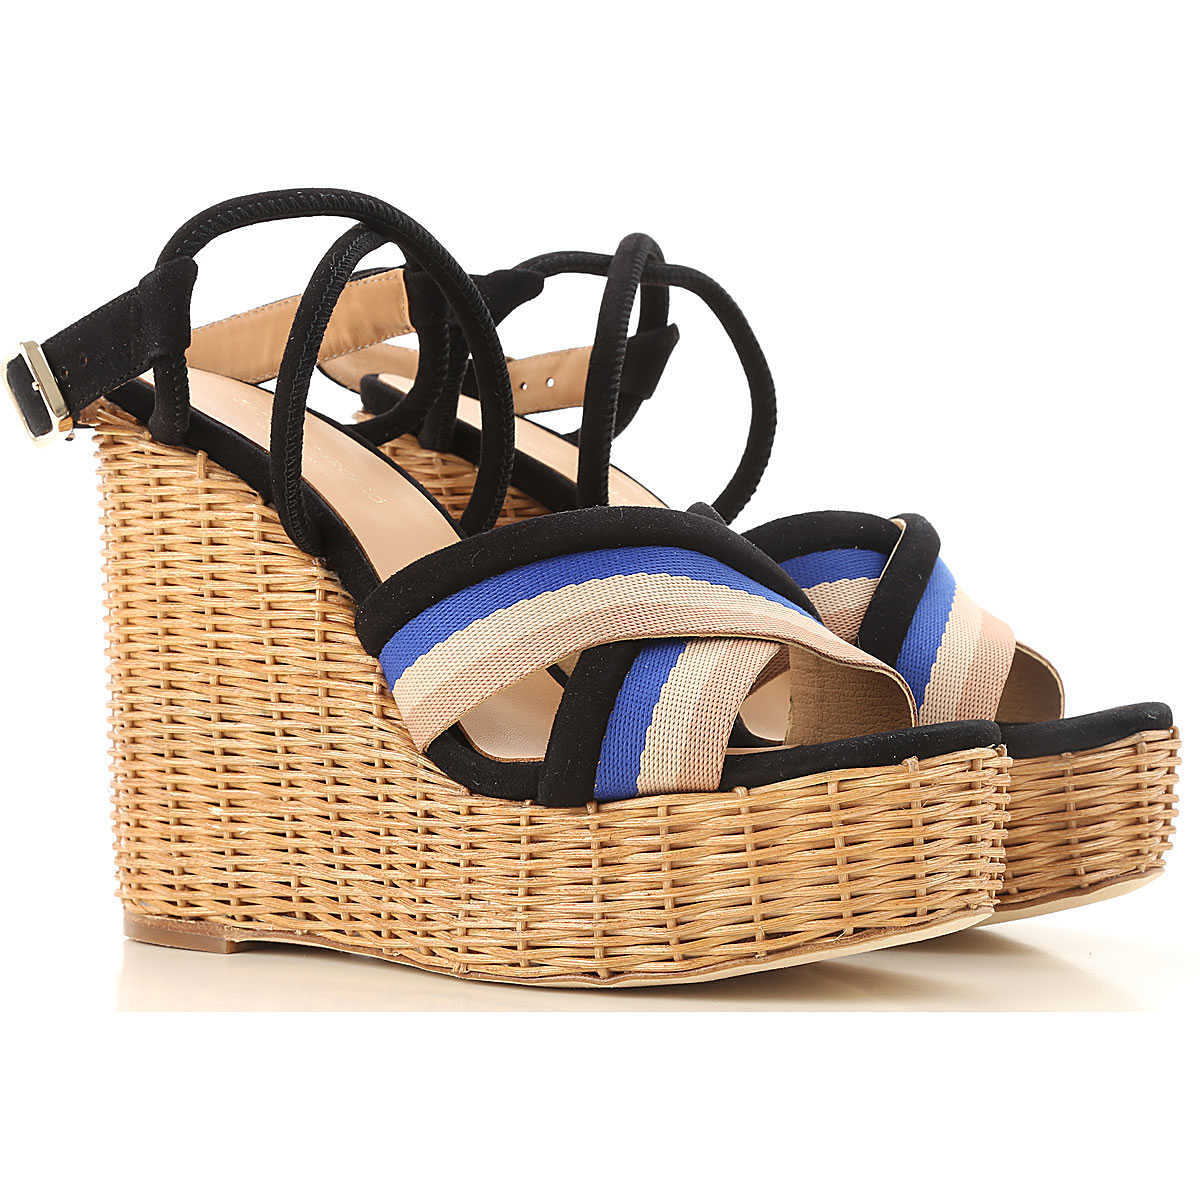 Paloma Barcelo Wedges for Women On Sale Black DK - GOOFASH - Womens HOUSE SHOES